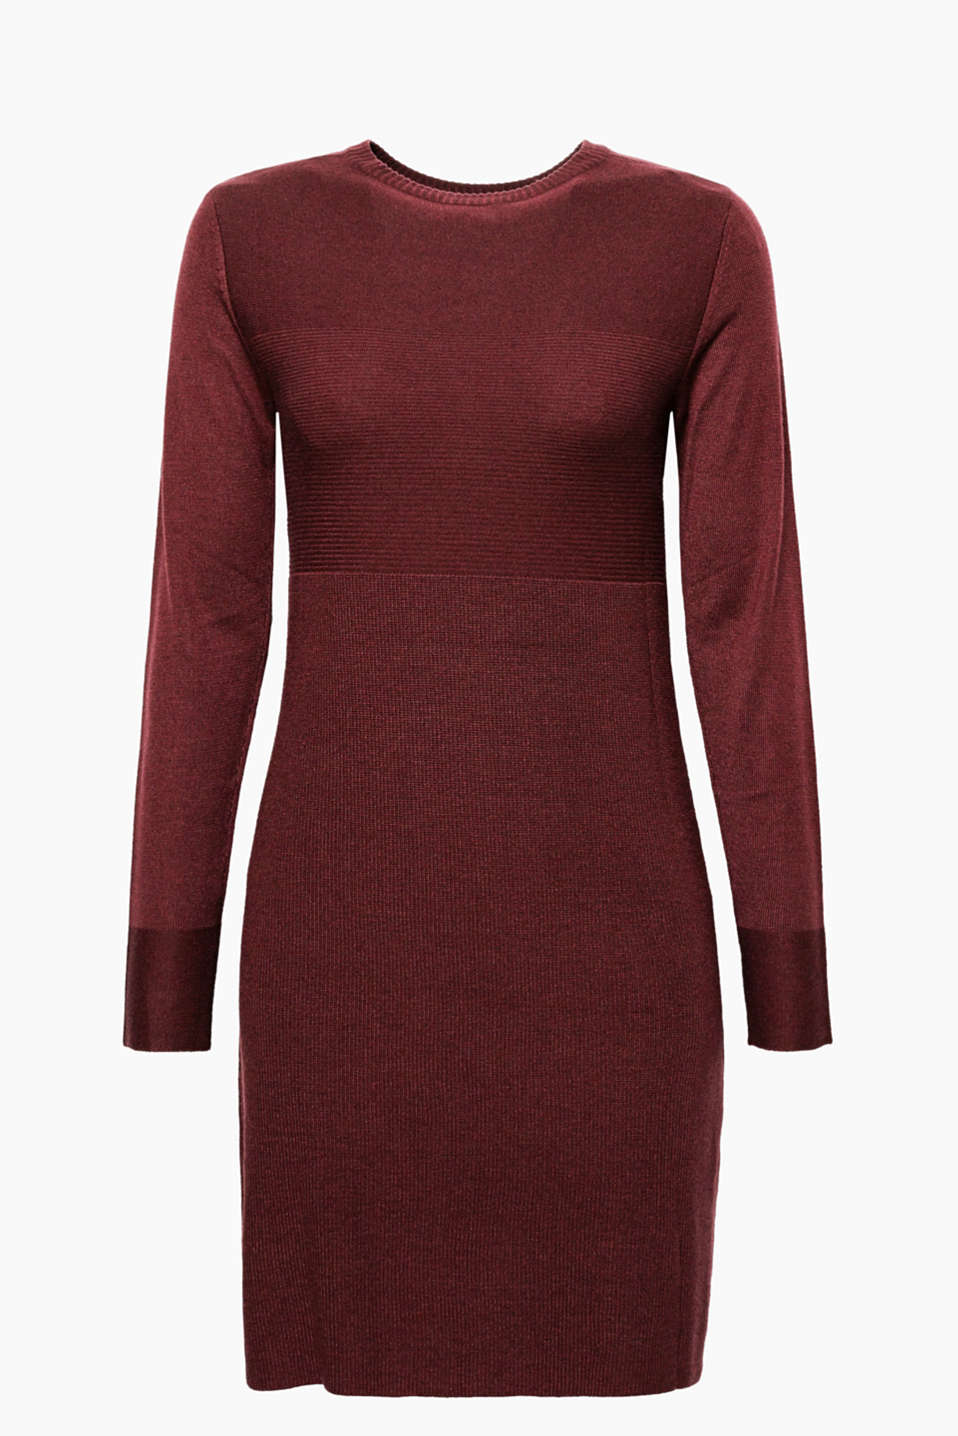 Everyday favourite: the fine-knit fabric with varying textures gives this dress an attractive look